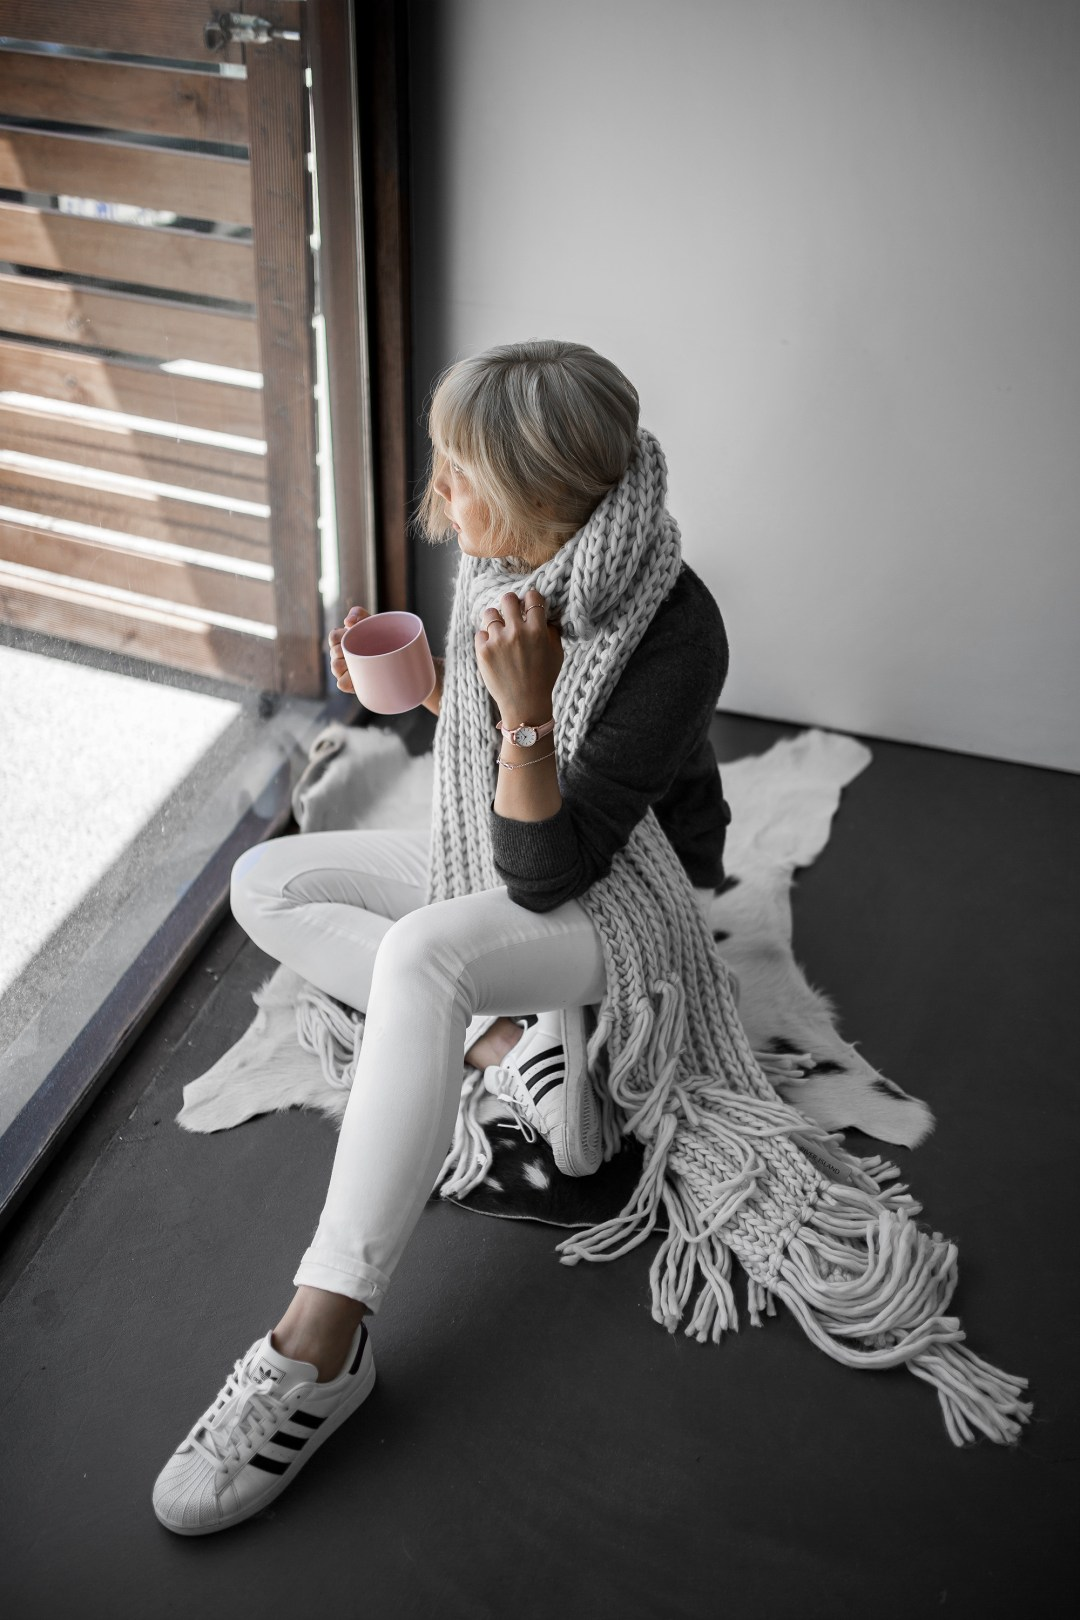 chunky-scarf-adidas-superstar-coffee-morning-inspiration-4-copy